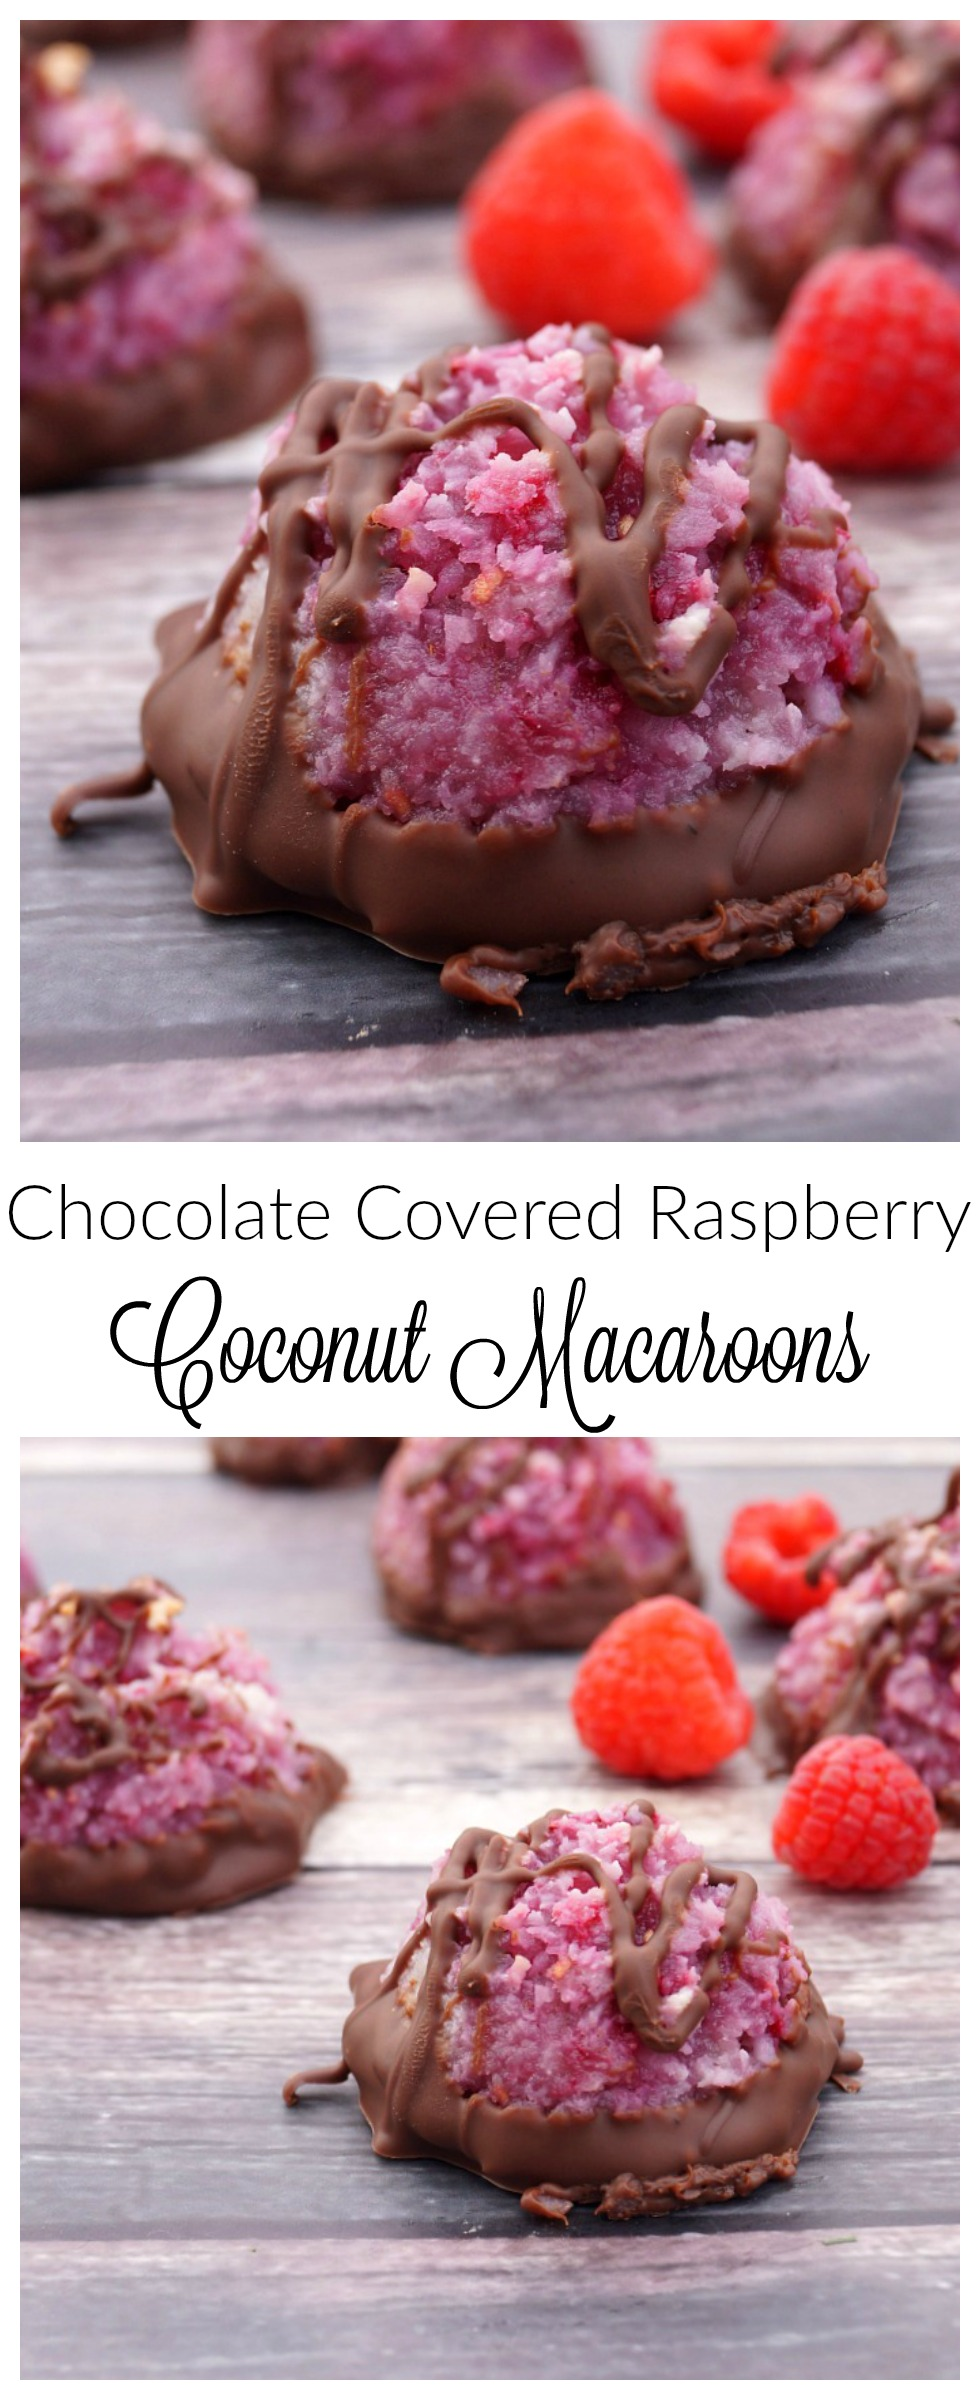 Chocolate Covered Raspberry Coconut Macaroons